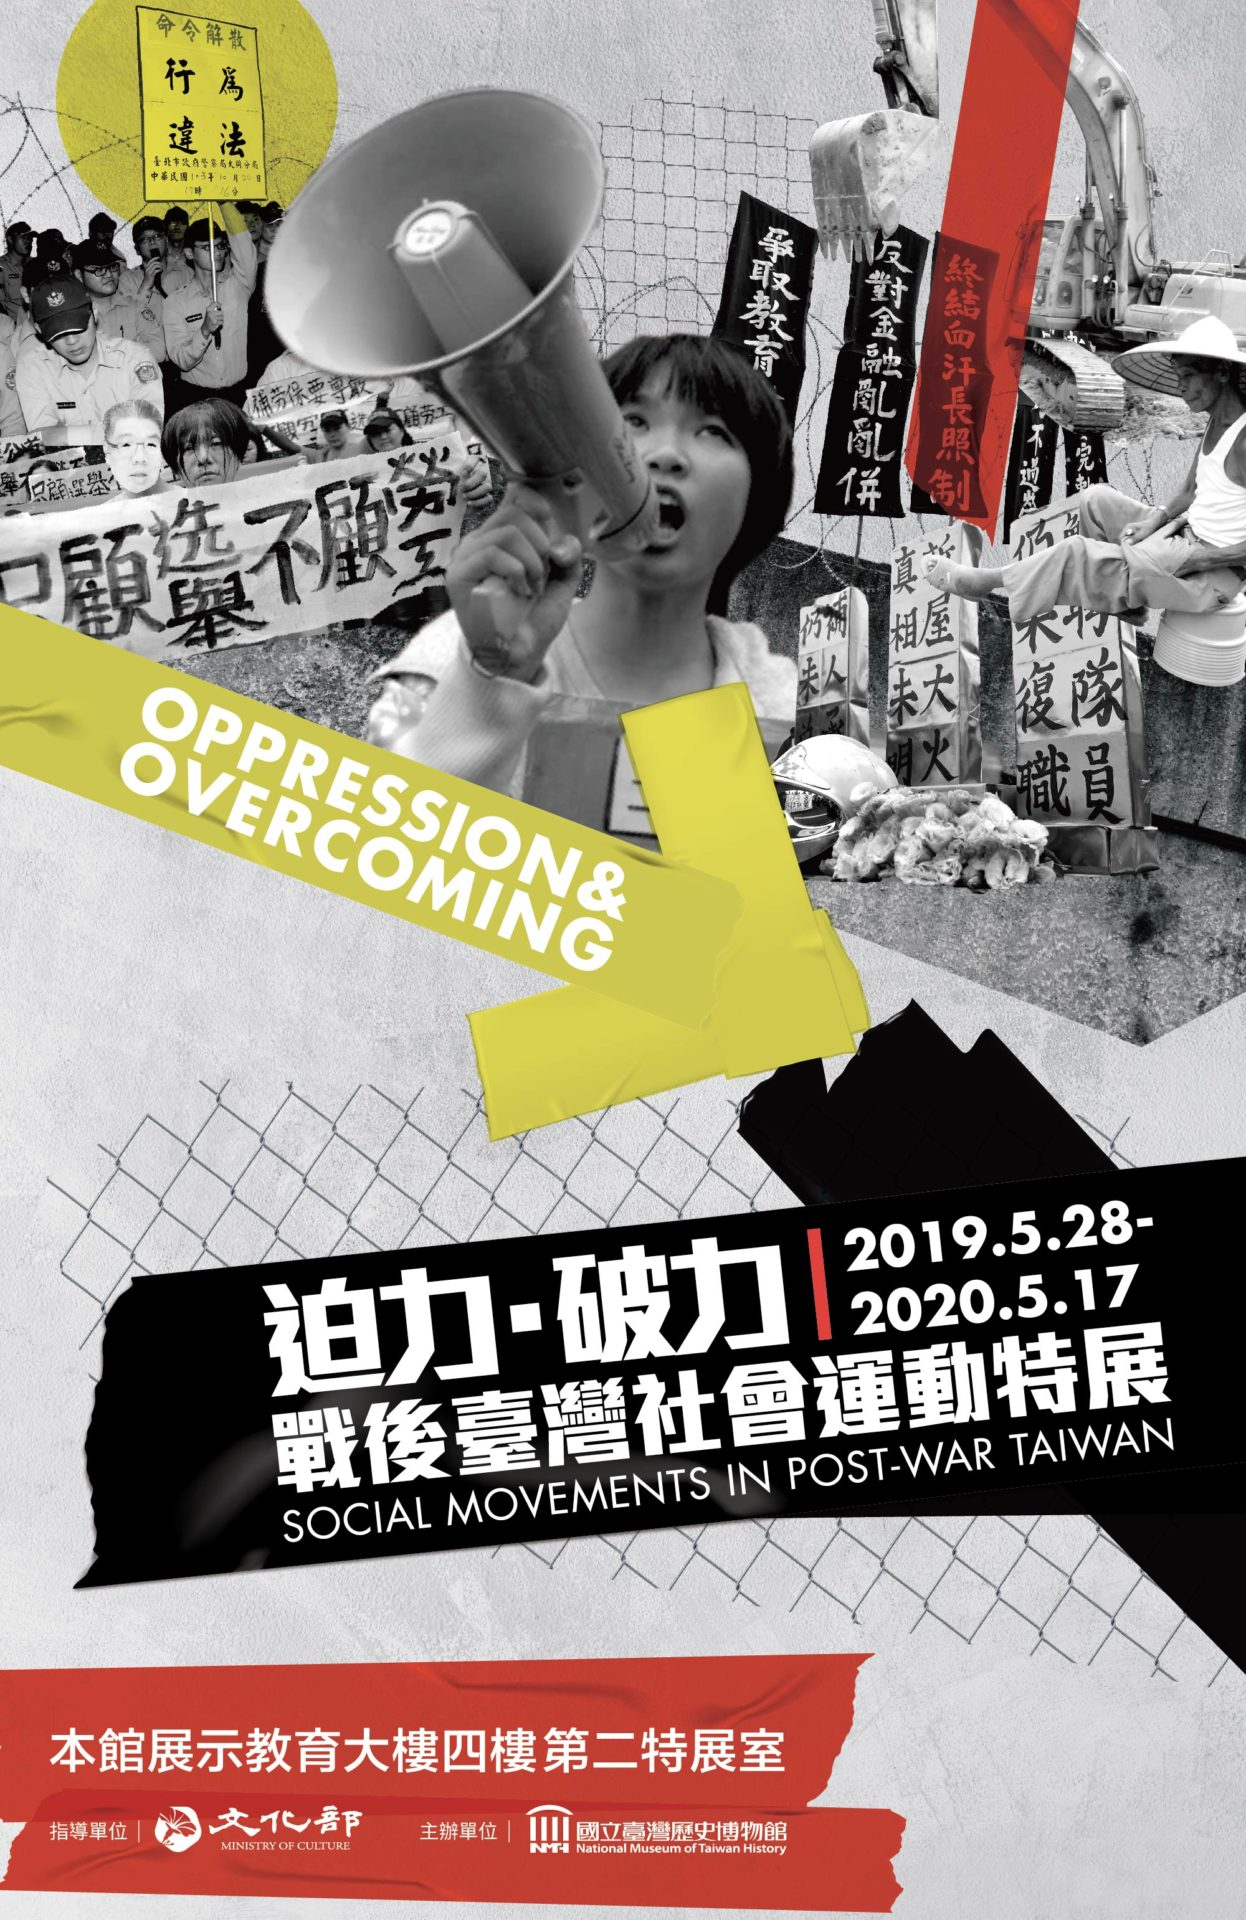 'Oppression & Overcoming: Social Movements in Post-War Taiwan'